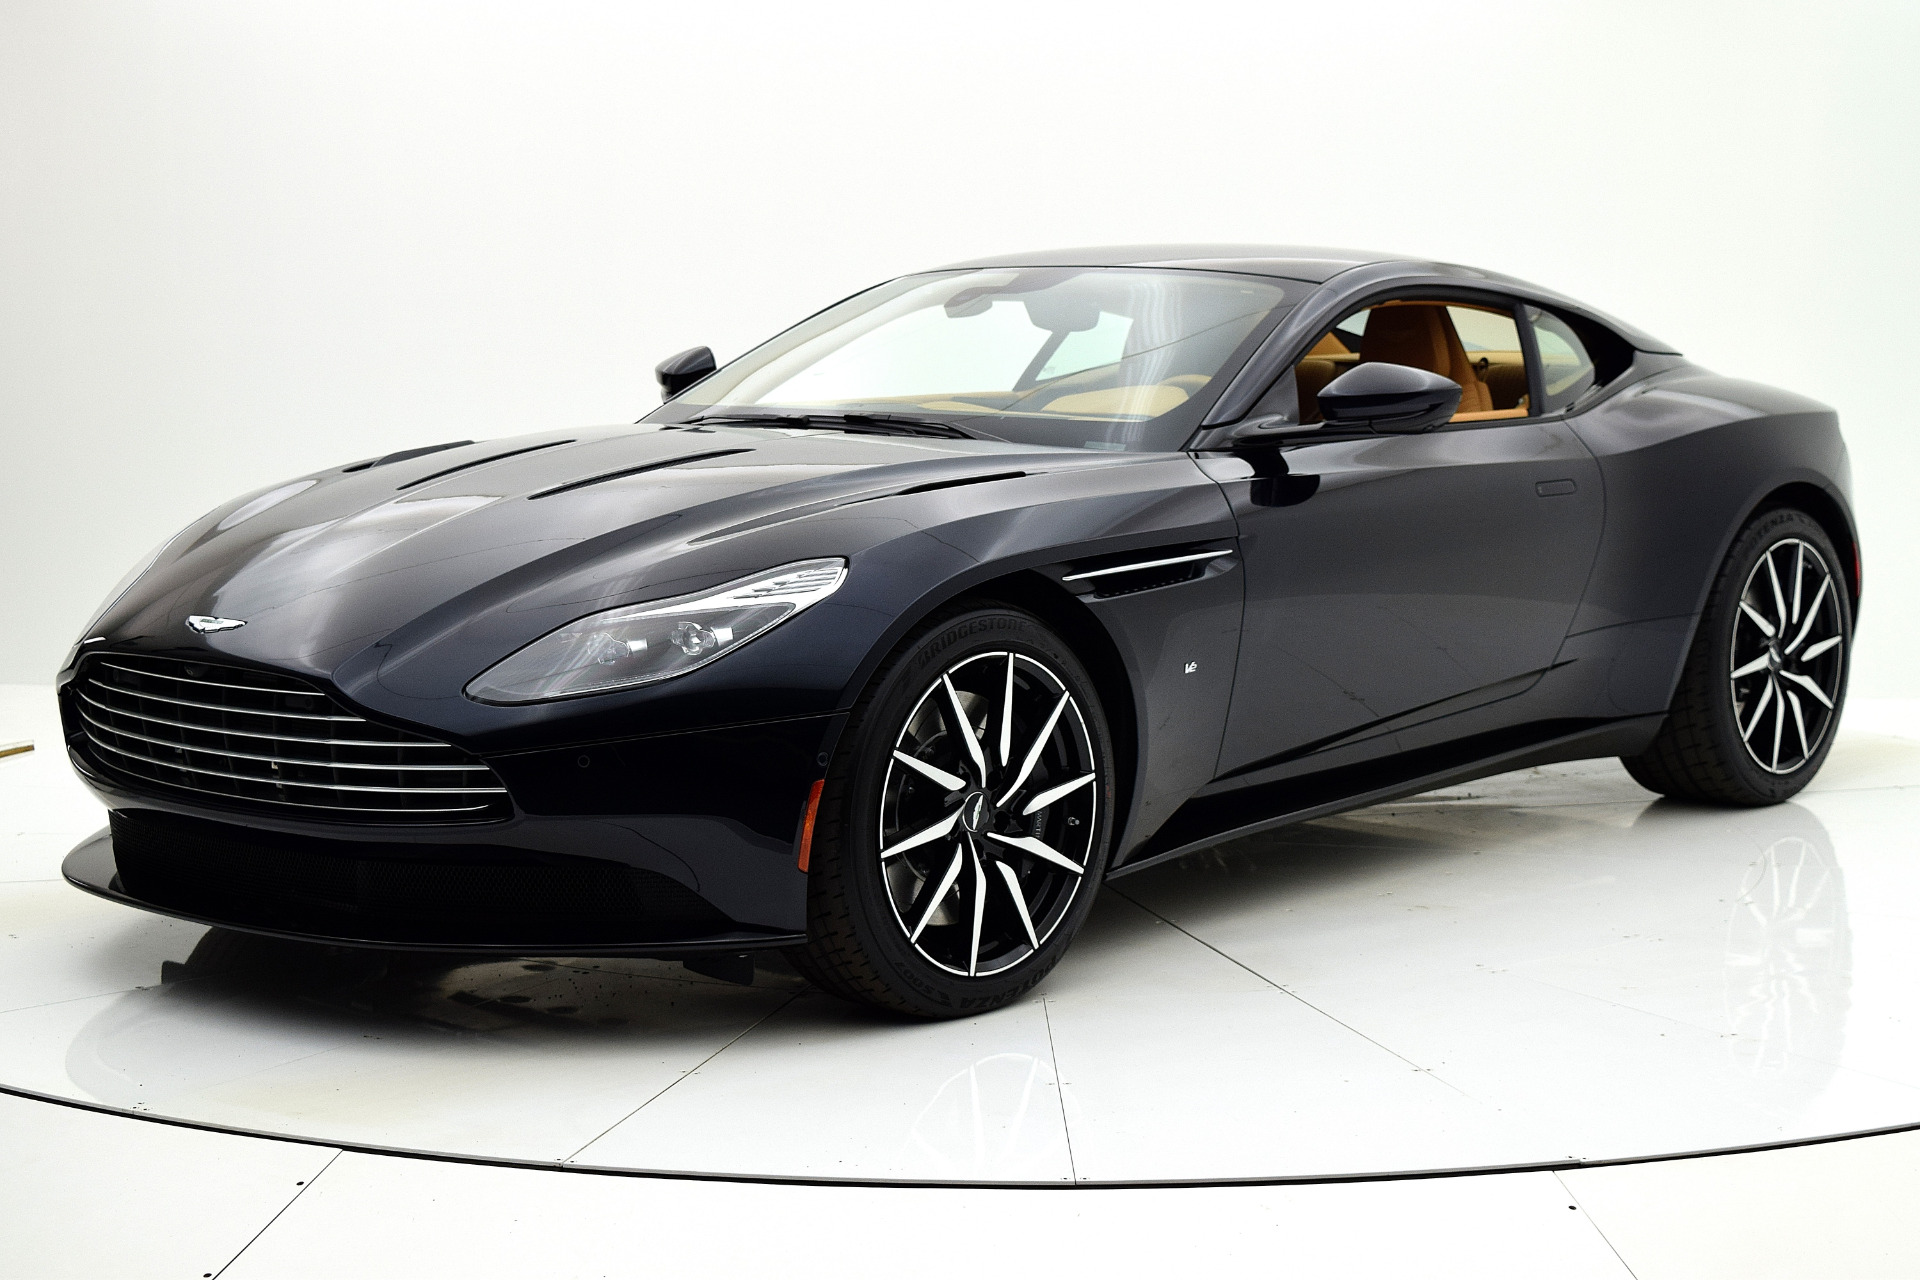 new 2017 aston martin db11 for sale 257 507 fc kerbeck aston martin stock 17a116. Black Bedroom Furniture Sets. Home Design Ideas